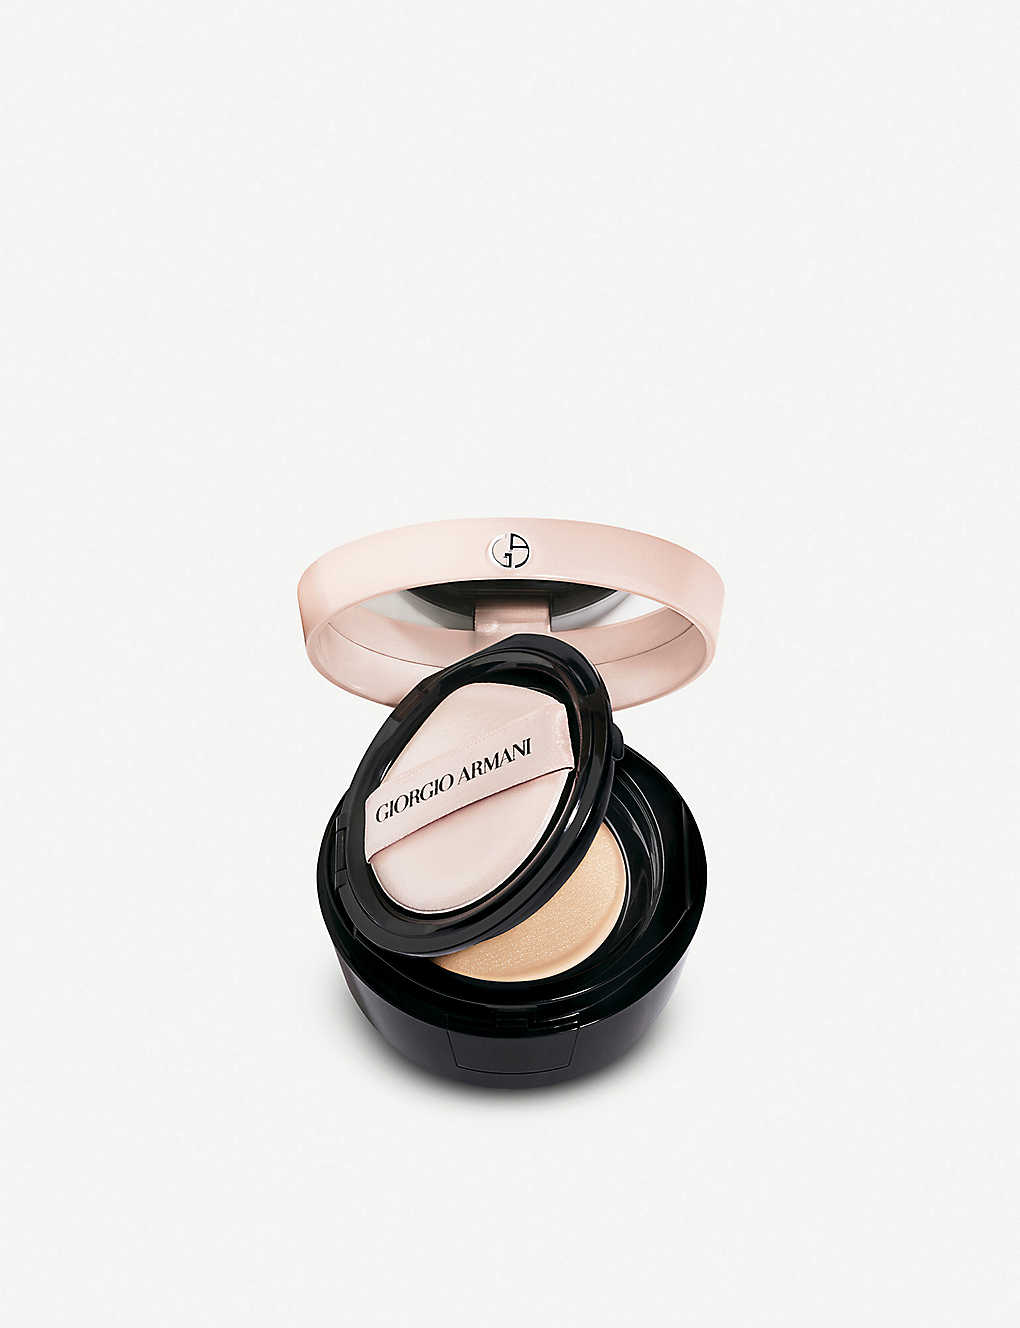 GIORGIO ARMANI: My Armani To Go Essence In Foundation Tone-Up Cushion 15g